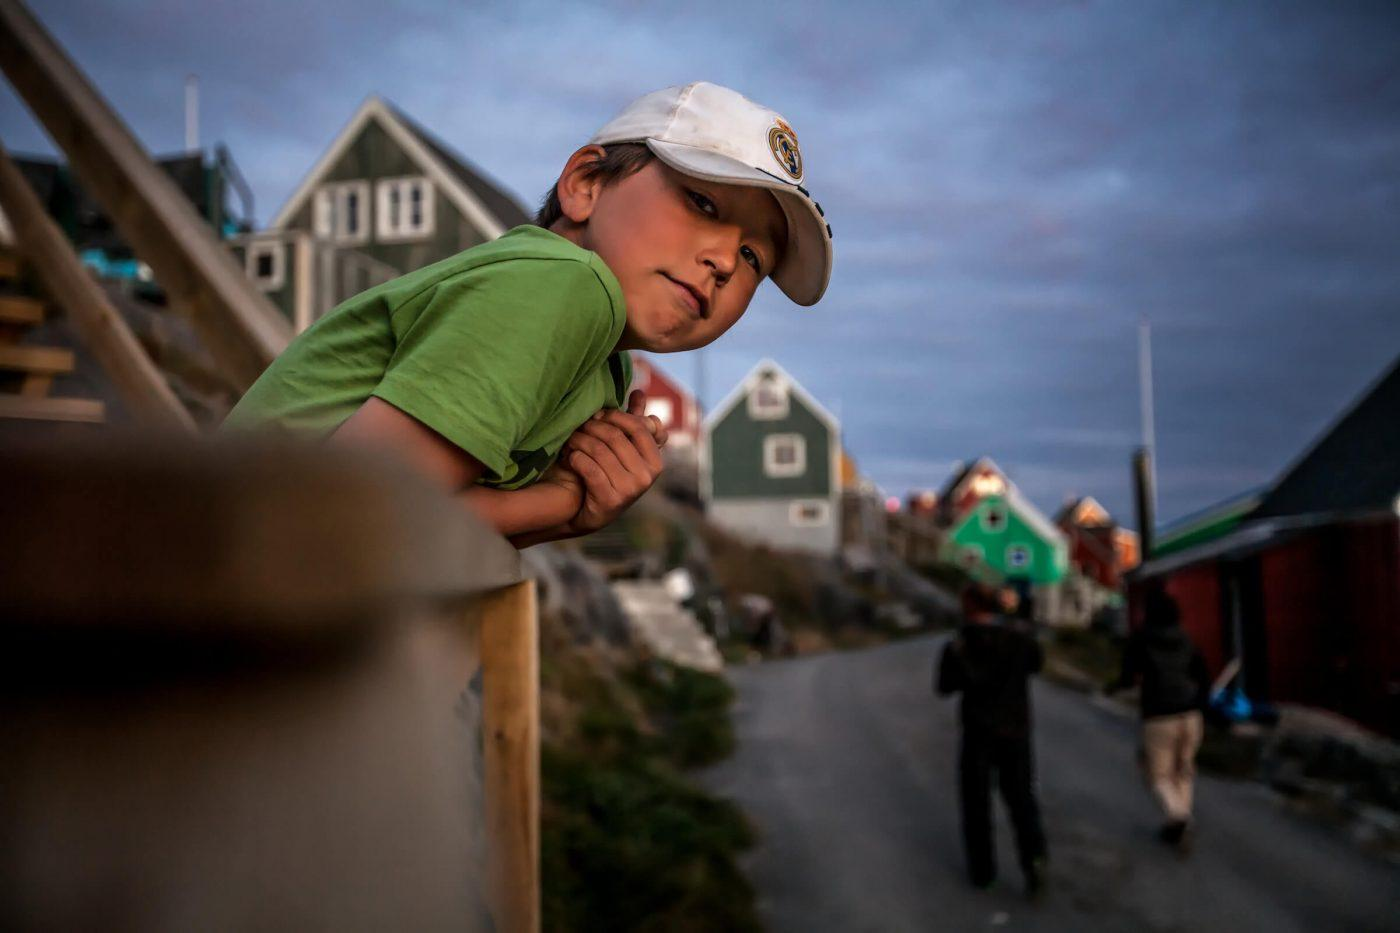 Portrait of a boy from Kangaamiut in Greenland. Photo by Mads Pihl